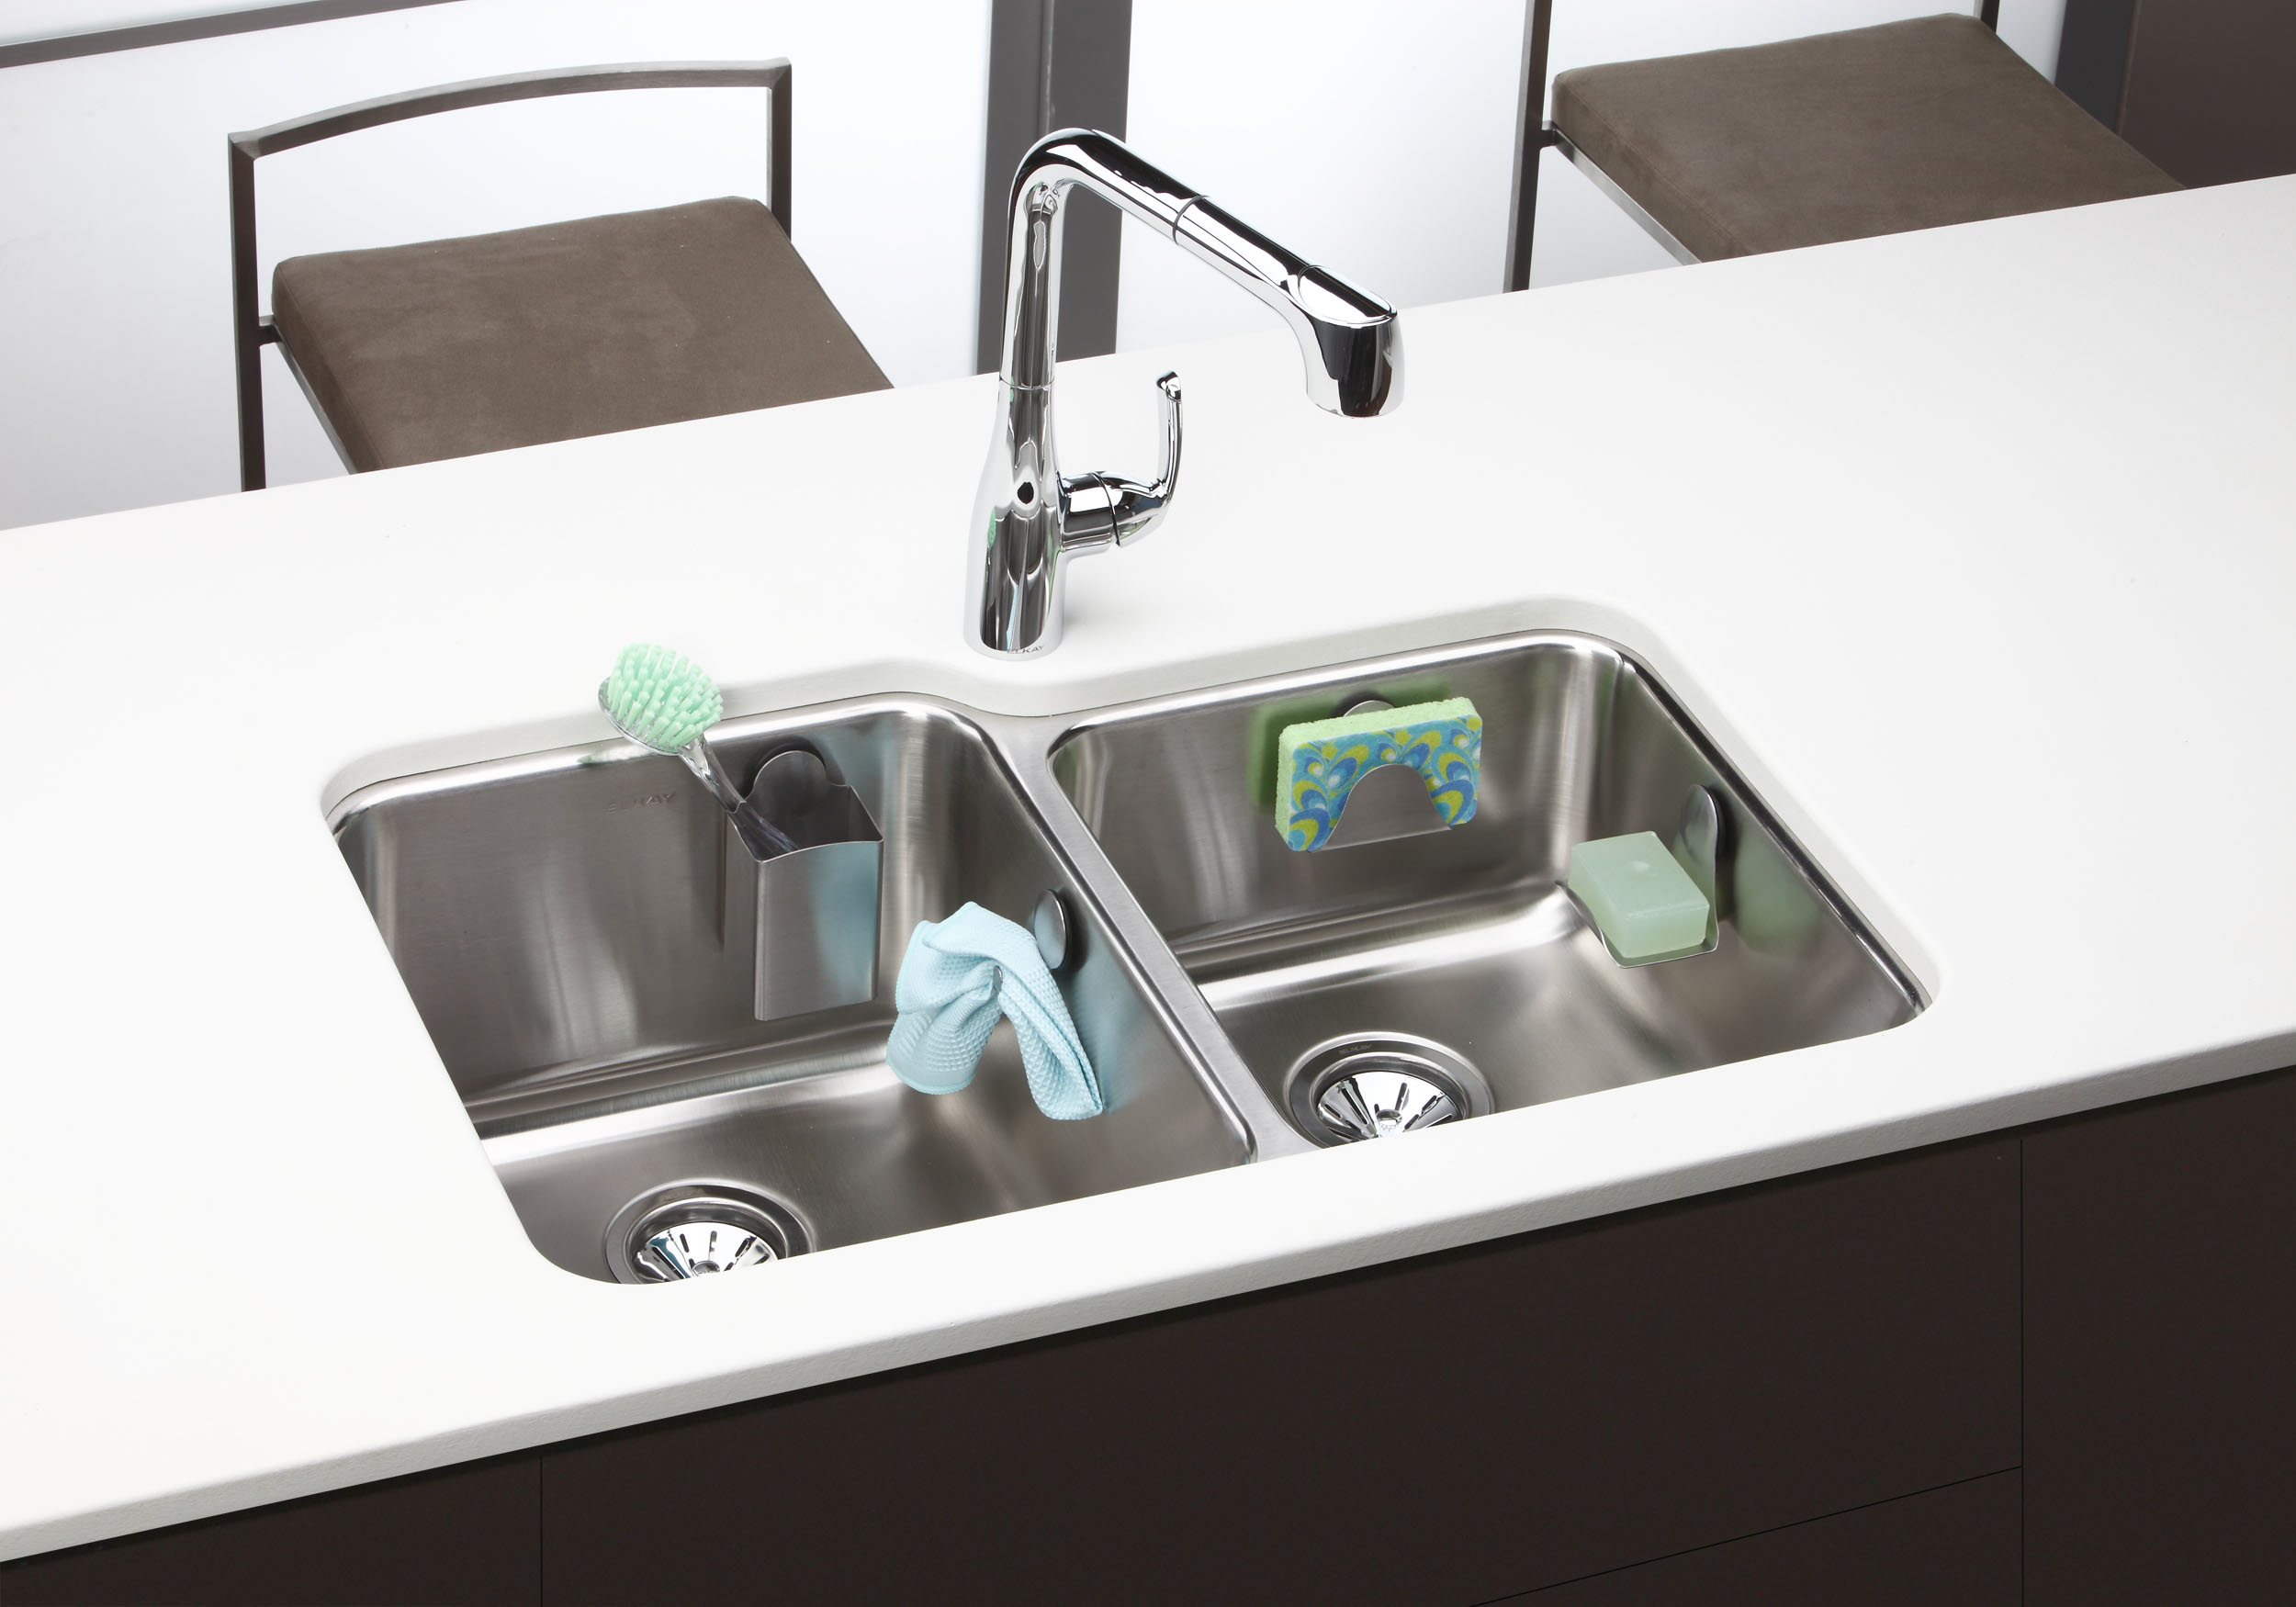 High Quality Elkay Magnetic Sink Accessories Ideas. Elkay E Dock Sink. Kitchen And Bath  Blab Modern Supply S Lighting Trends